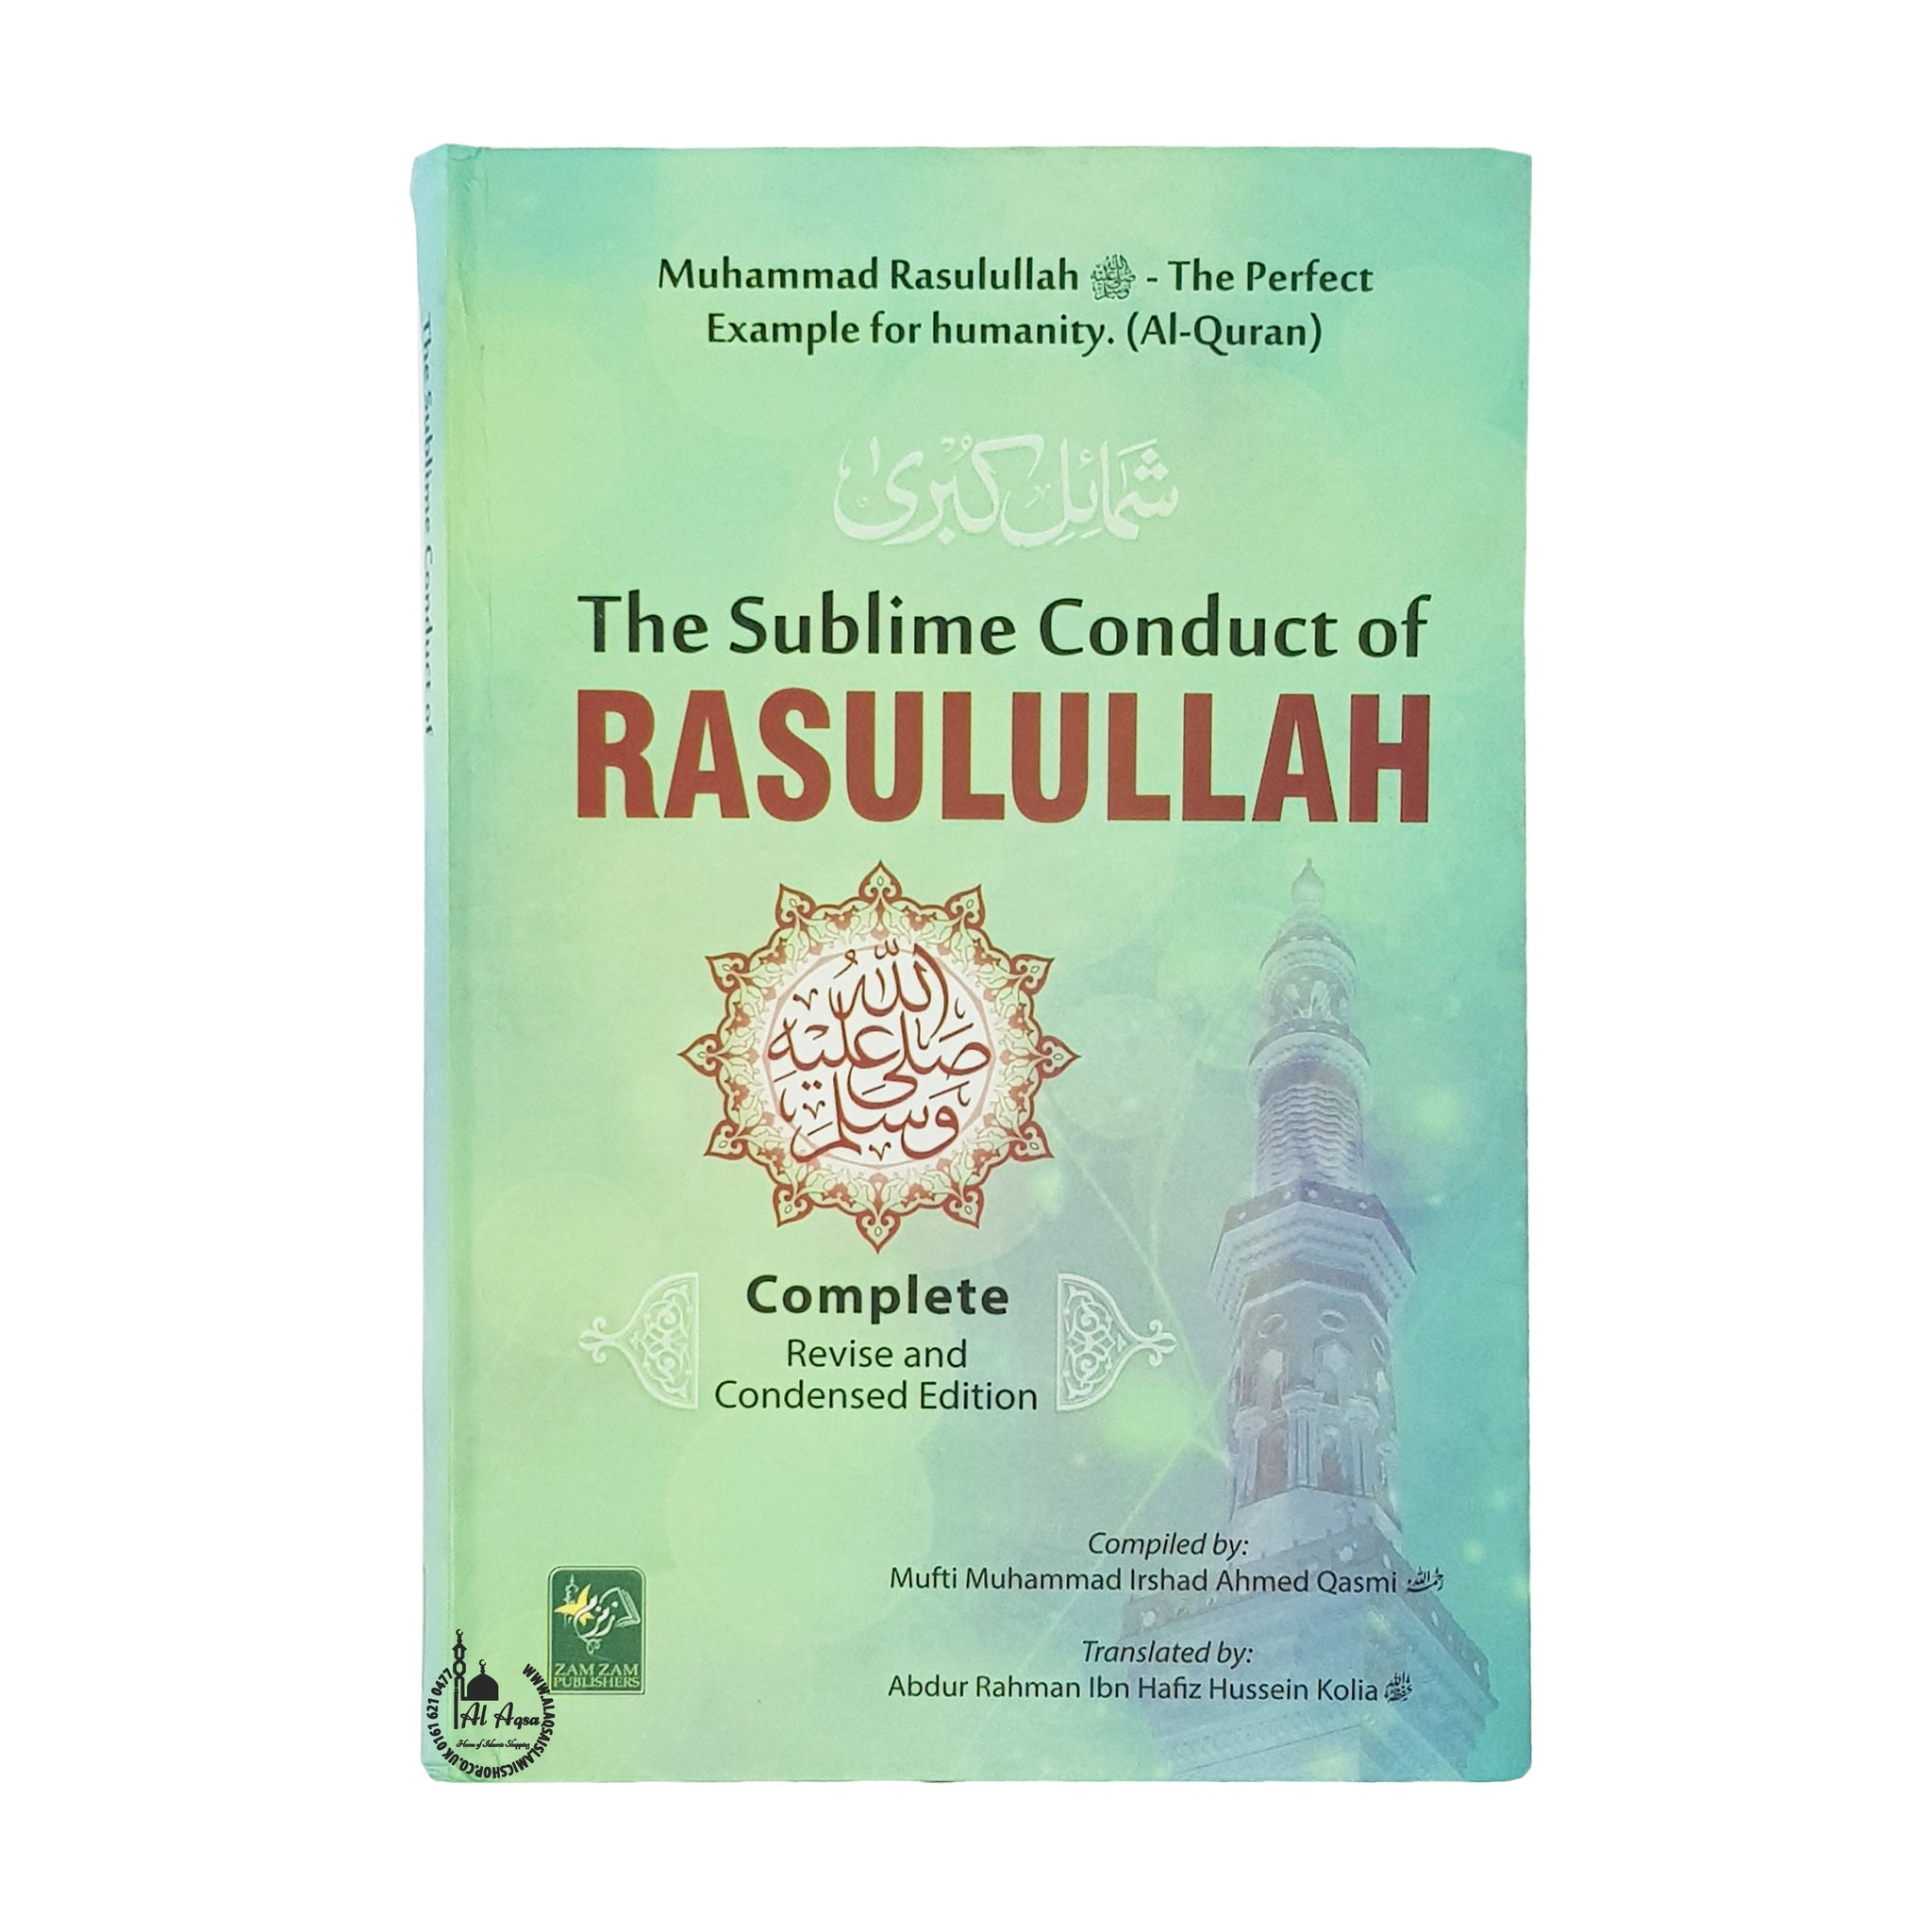 The Sublime Conduct of Rasul